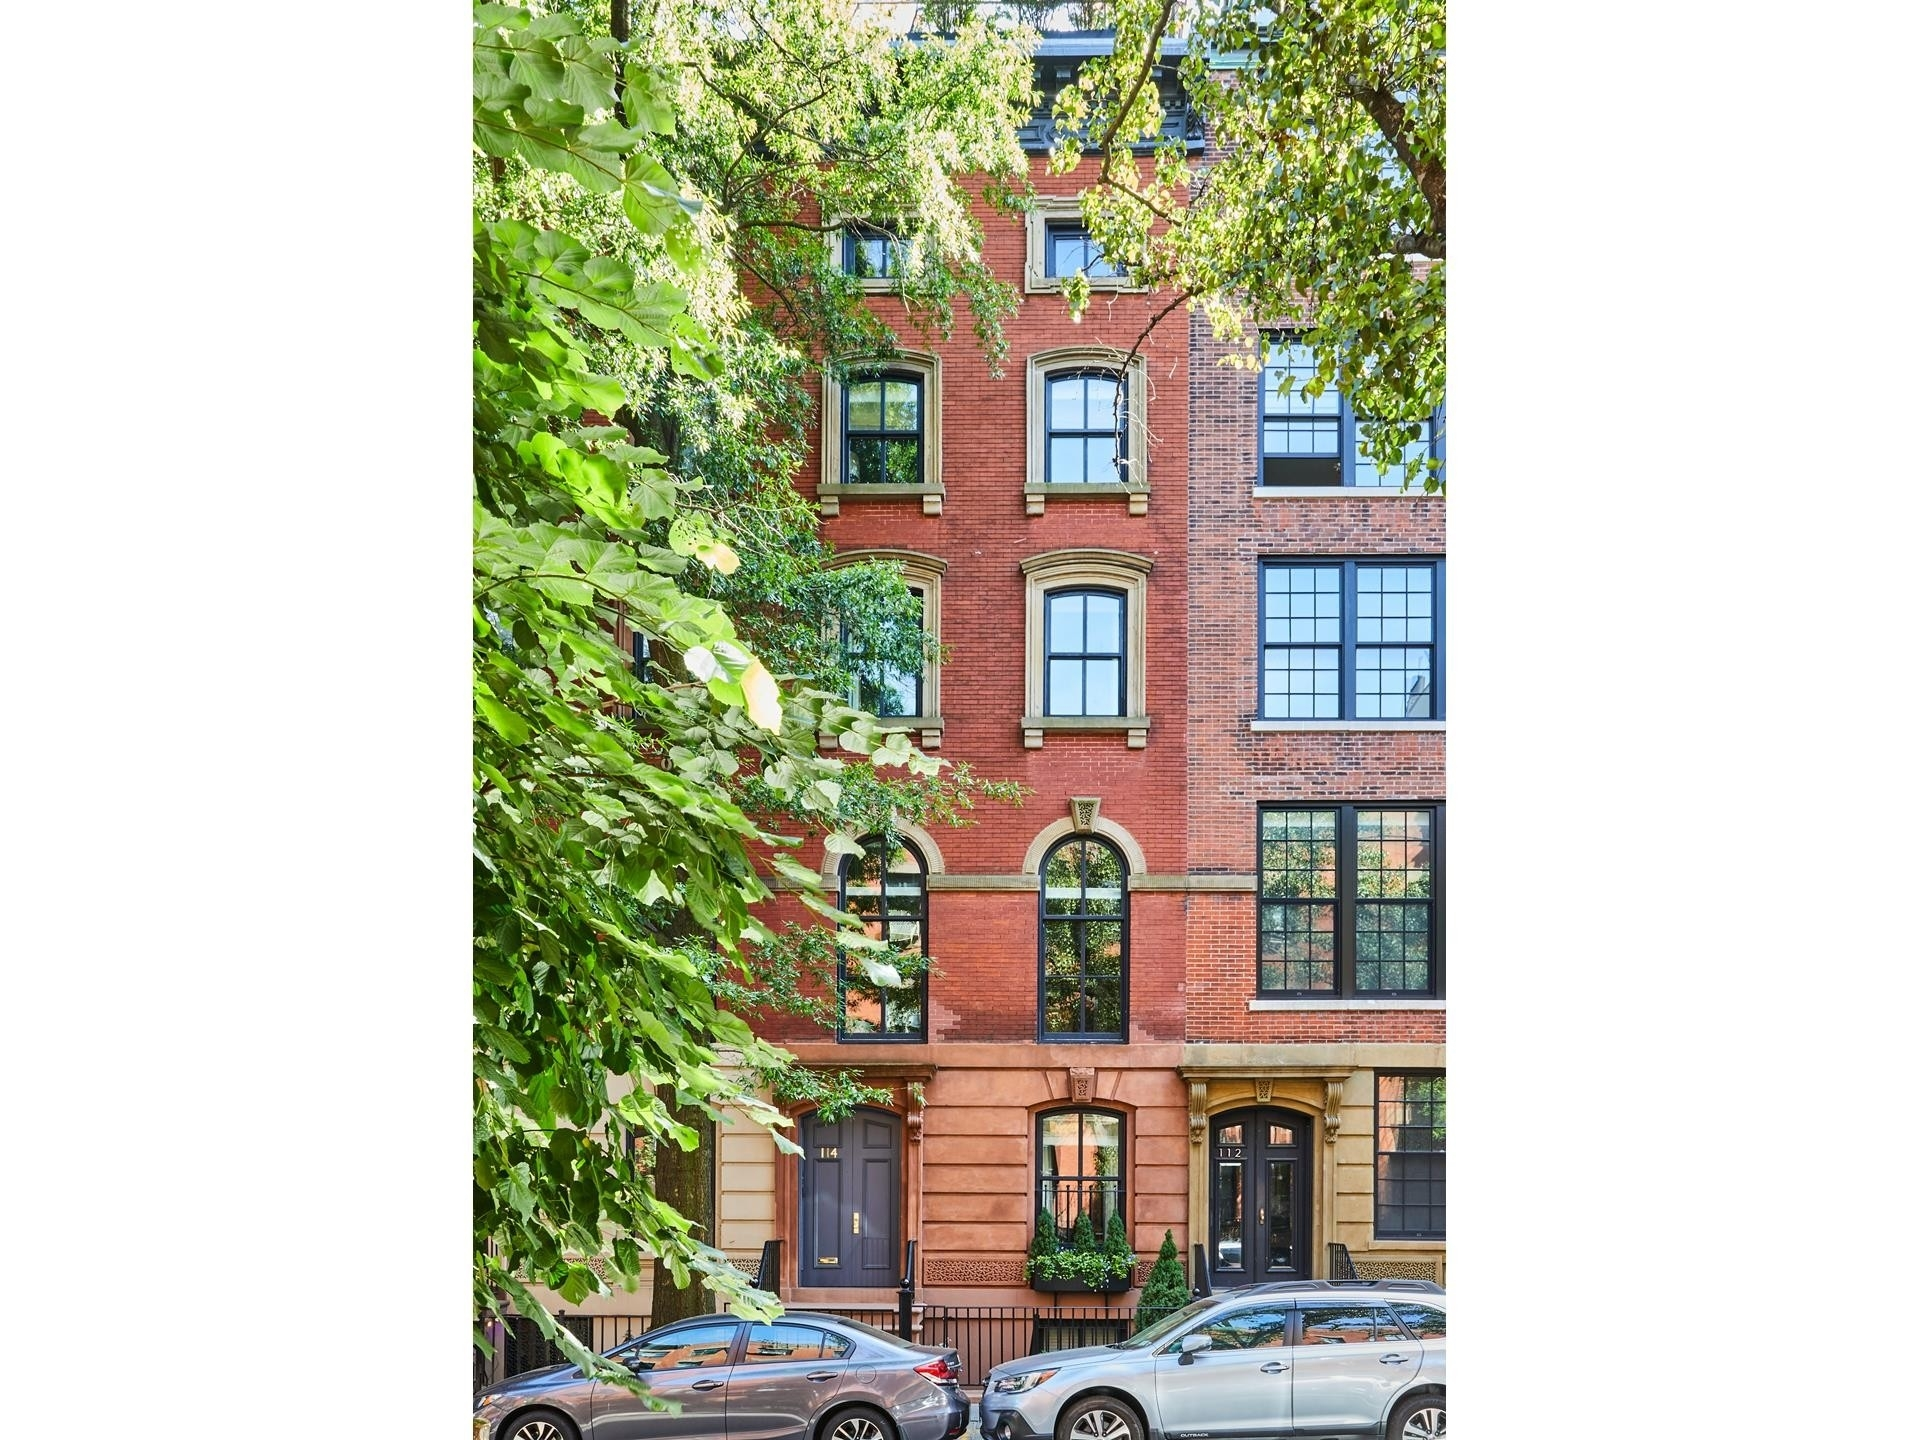 Single Family Townhouse for Sale at 114 E 10TH ST , TOWNHOUSE East Village, New York, NY 10003